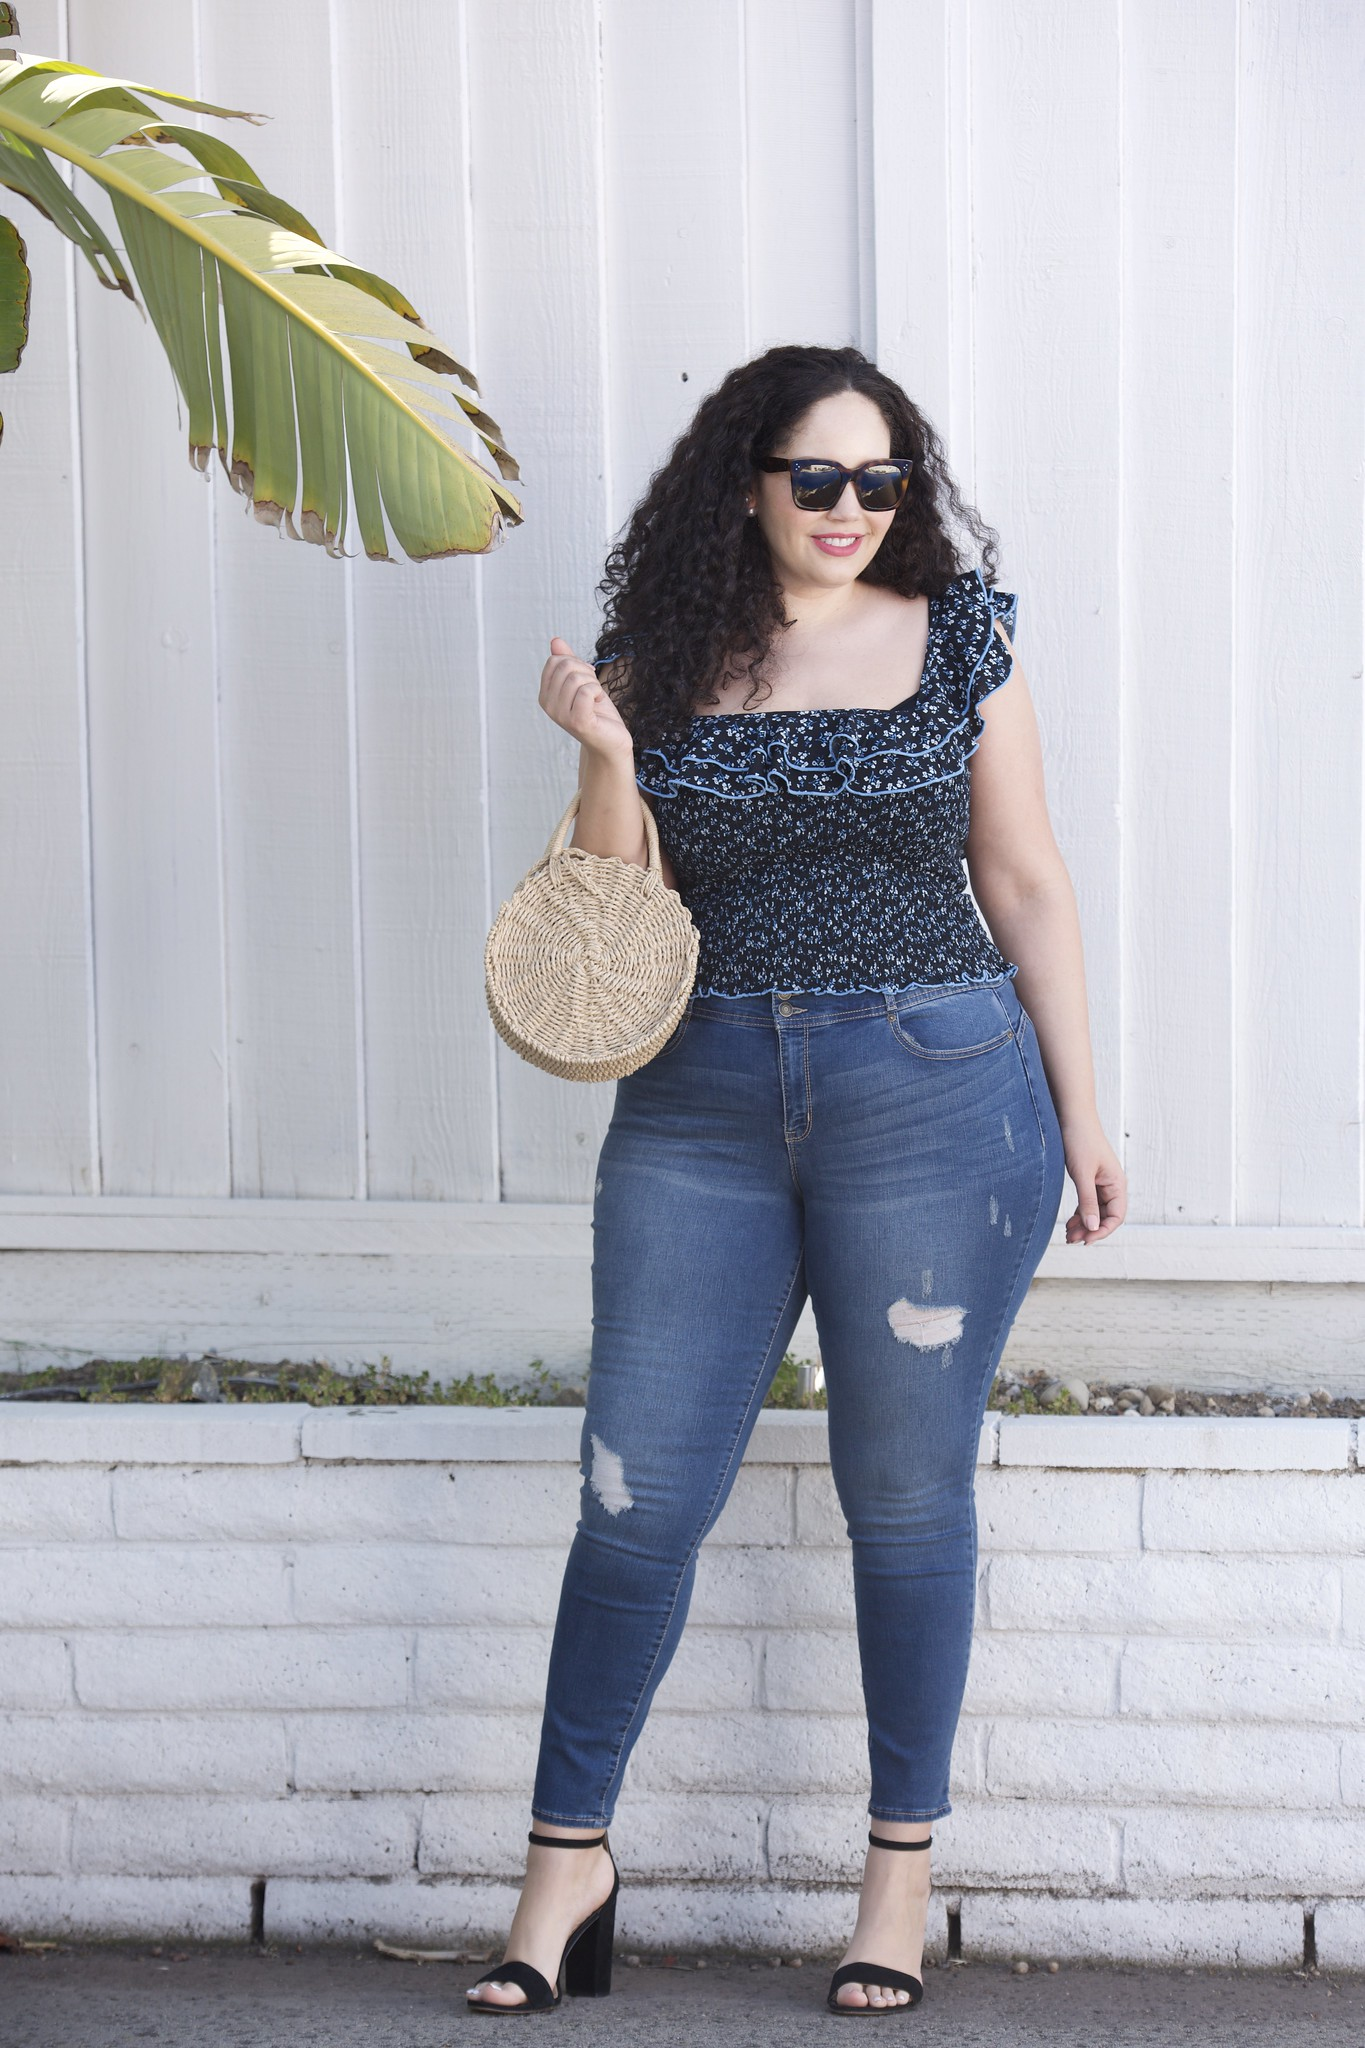 These Jeans were Made for Curves | Girl With Curves